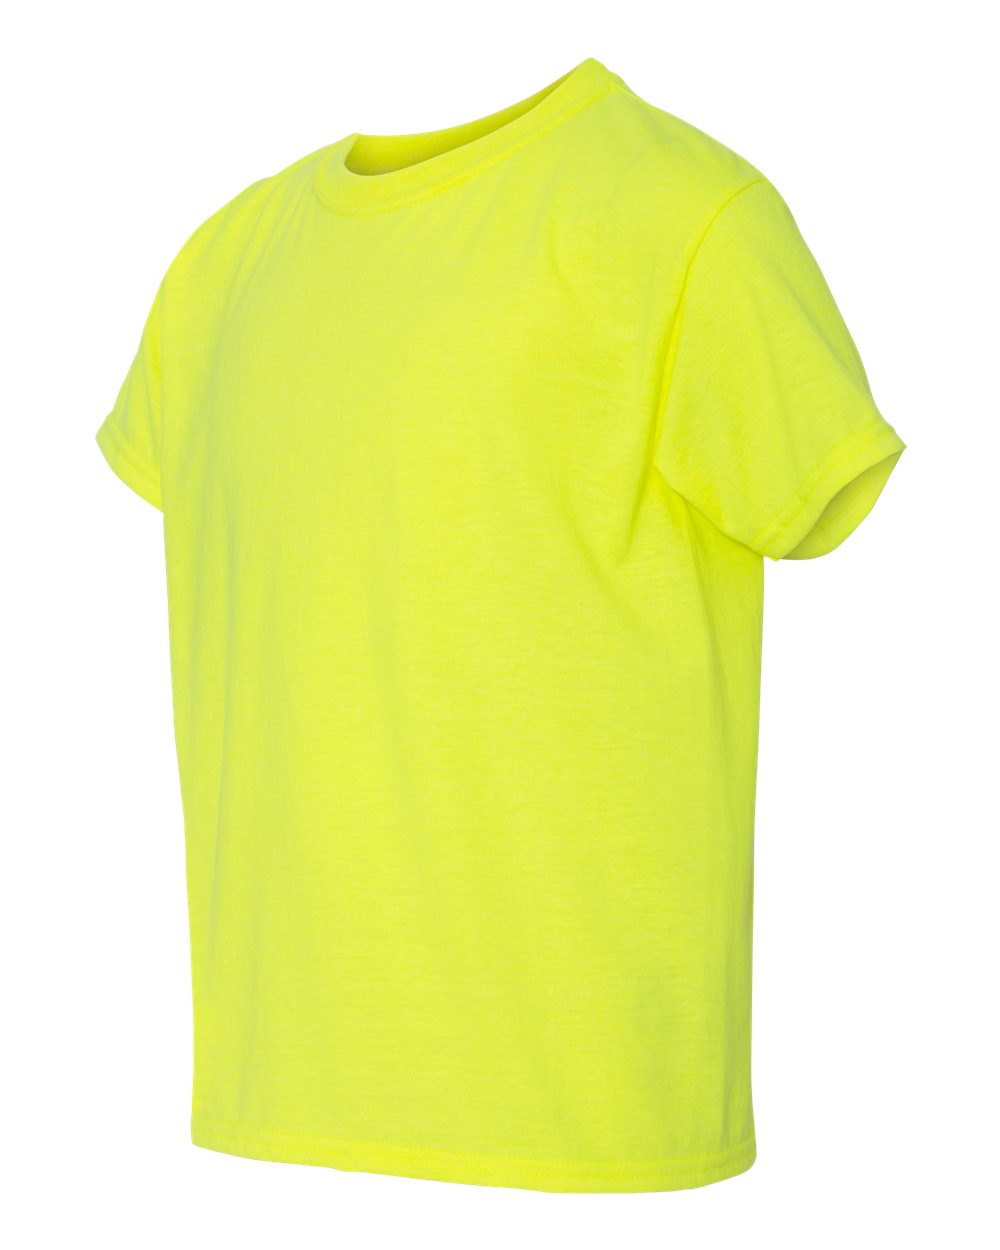 GILDAN Youth 64500B T-shirt Safety Green